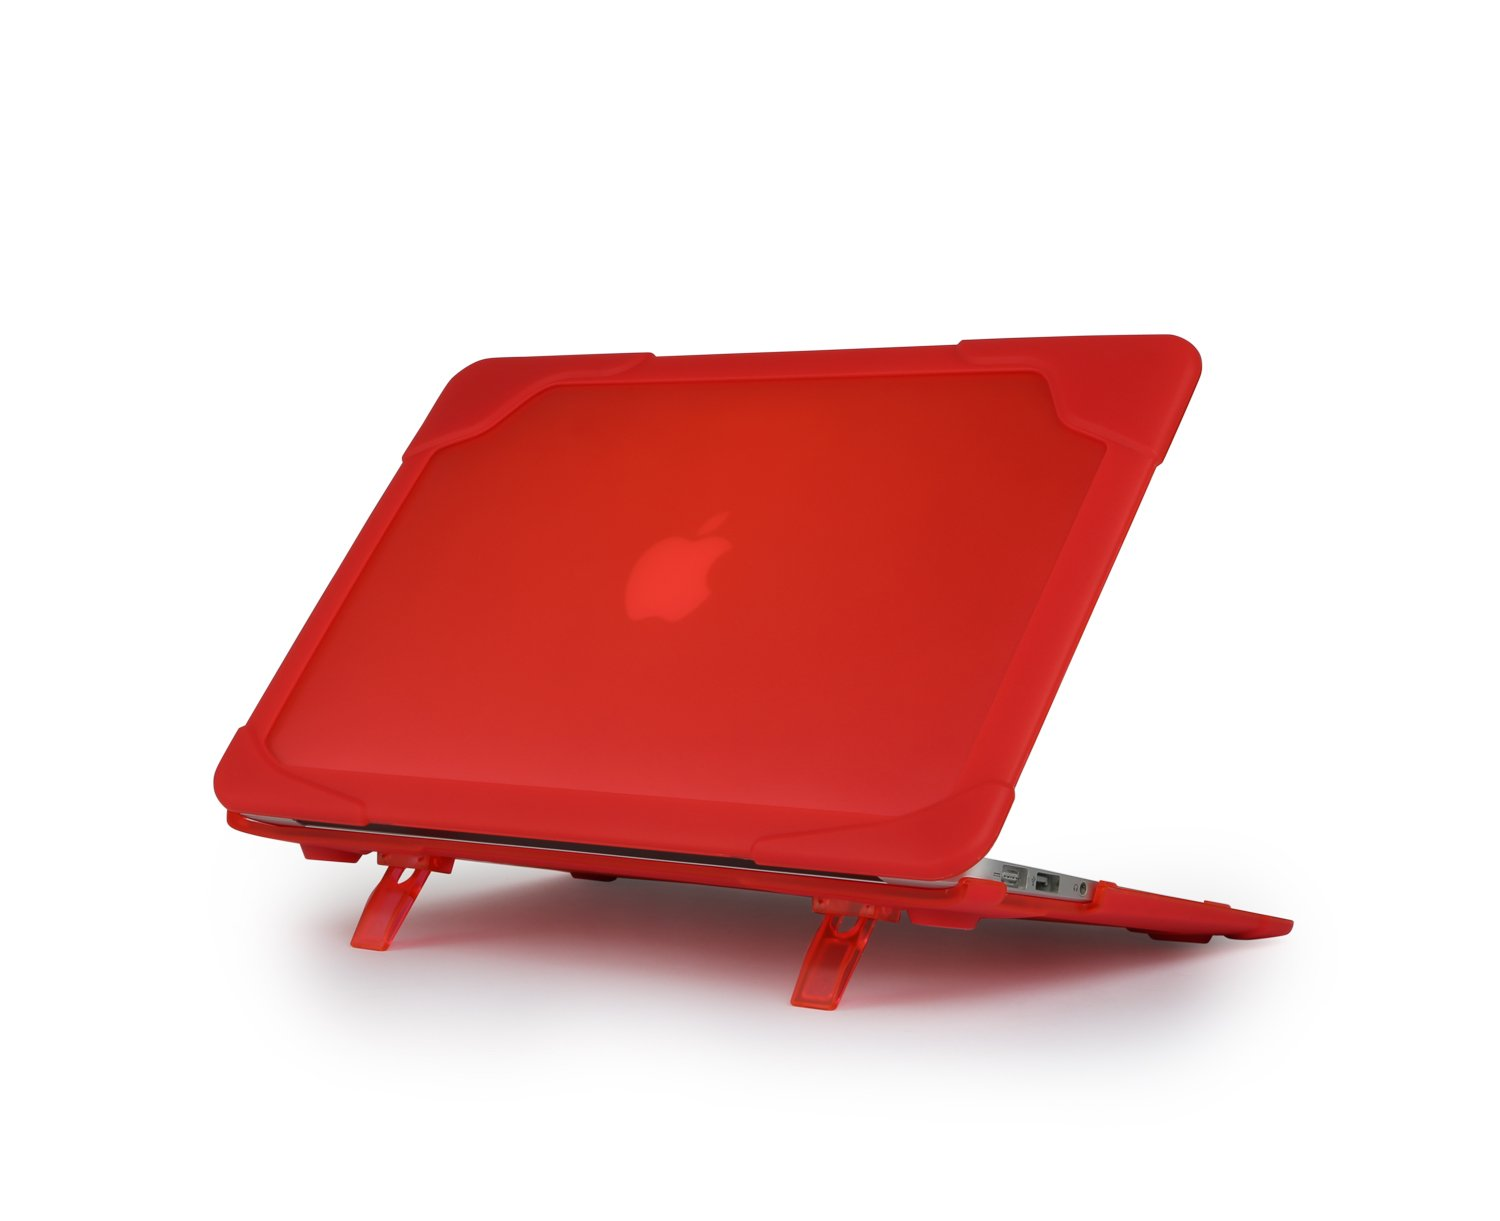 EOL Max Cases Extreme Shell for MacBook Air 13''- Extreme Dual Layer Protective Shell, Co-Molded Polycarbonate w/Premium Shock Absorbing TPE Edge Protection, Pop-up Feet - Red